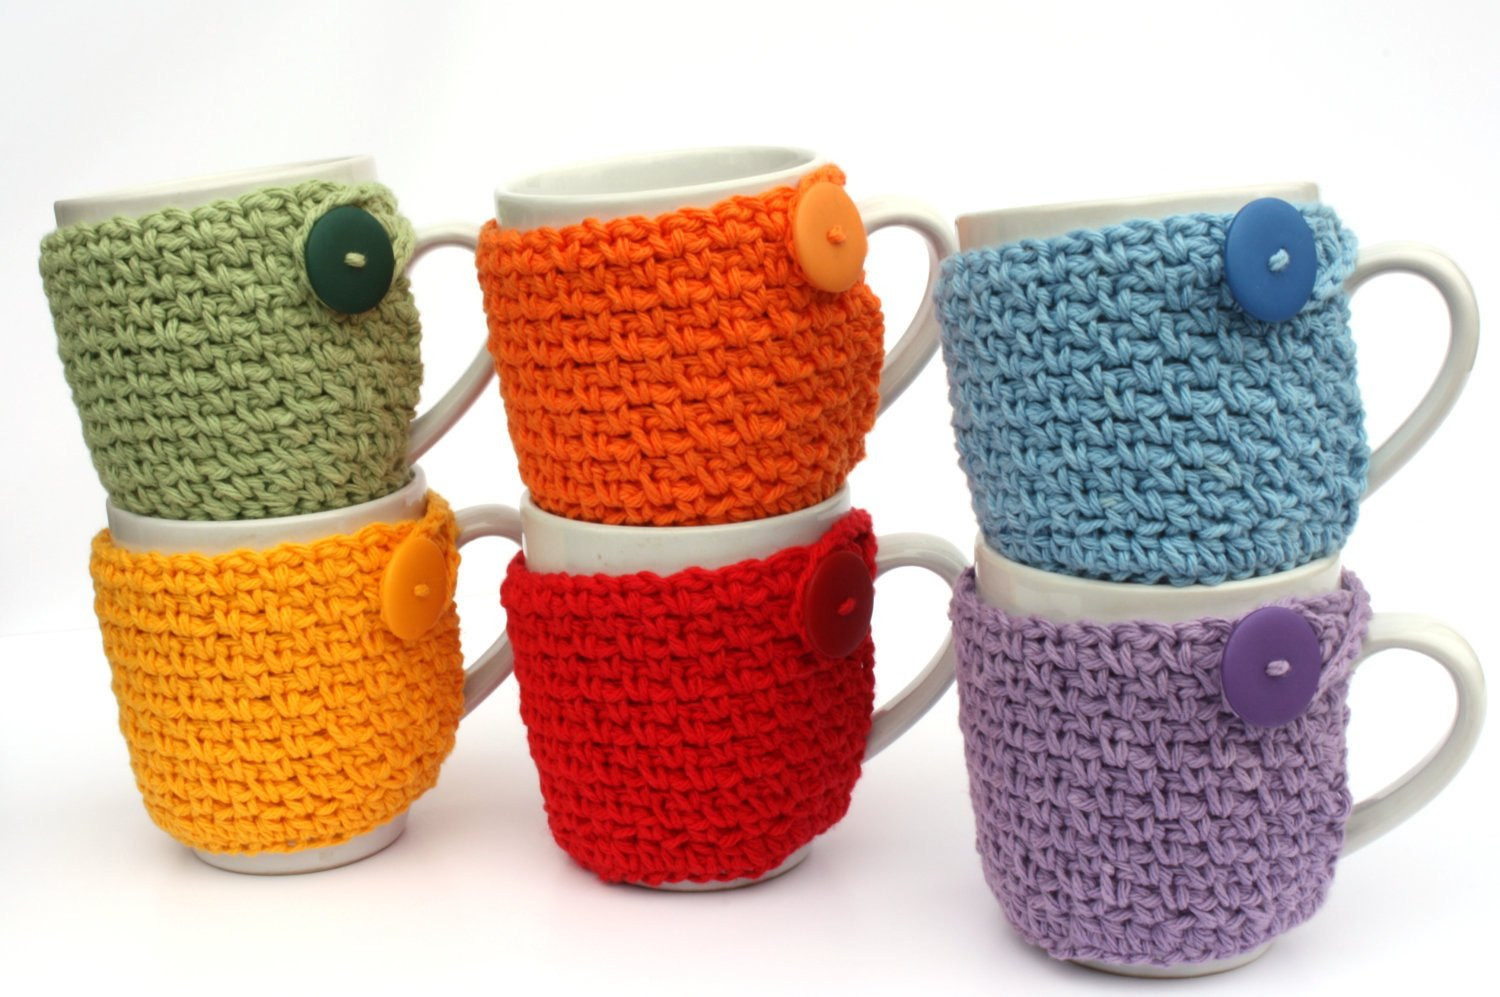 Crochet Coffee Cup Cozy Lovely Coffee Cup Cozy Crochet Cup Sleeve You Pick the by Sweetbriers Of Crochet Coffee Cup Cozy Elegant Sunny Stitching Pinned It & Did It Mug Cozy Crochet